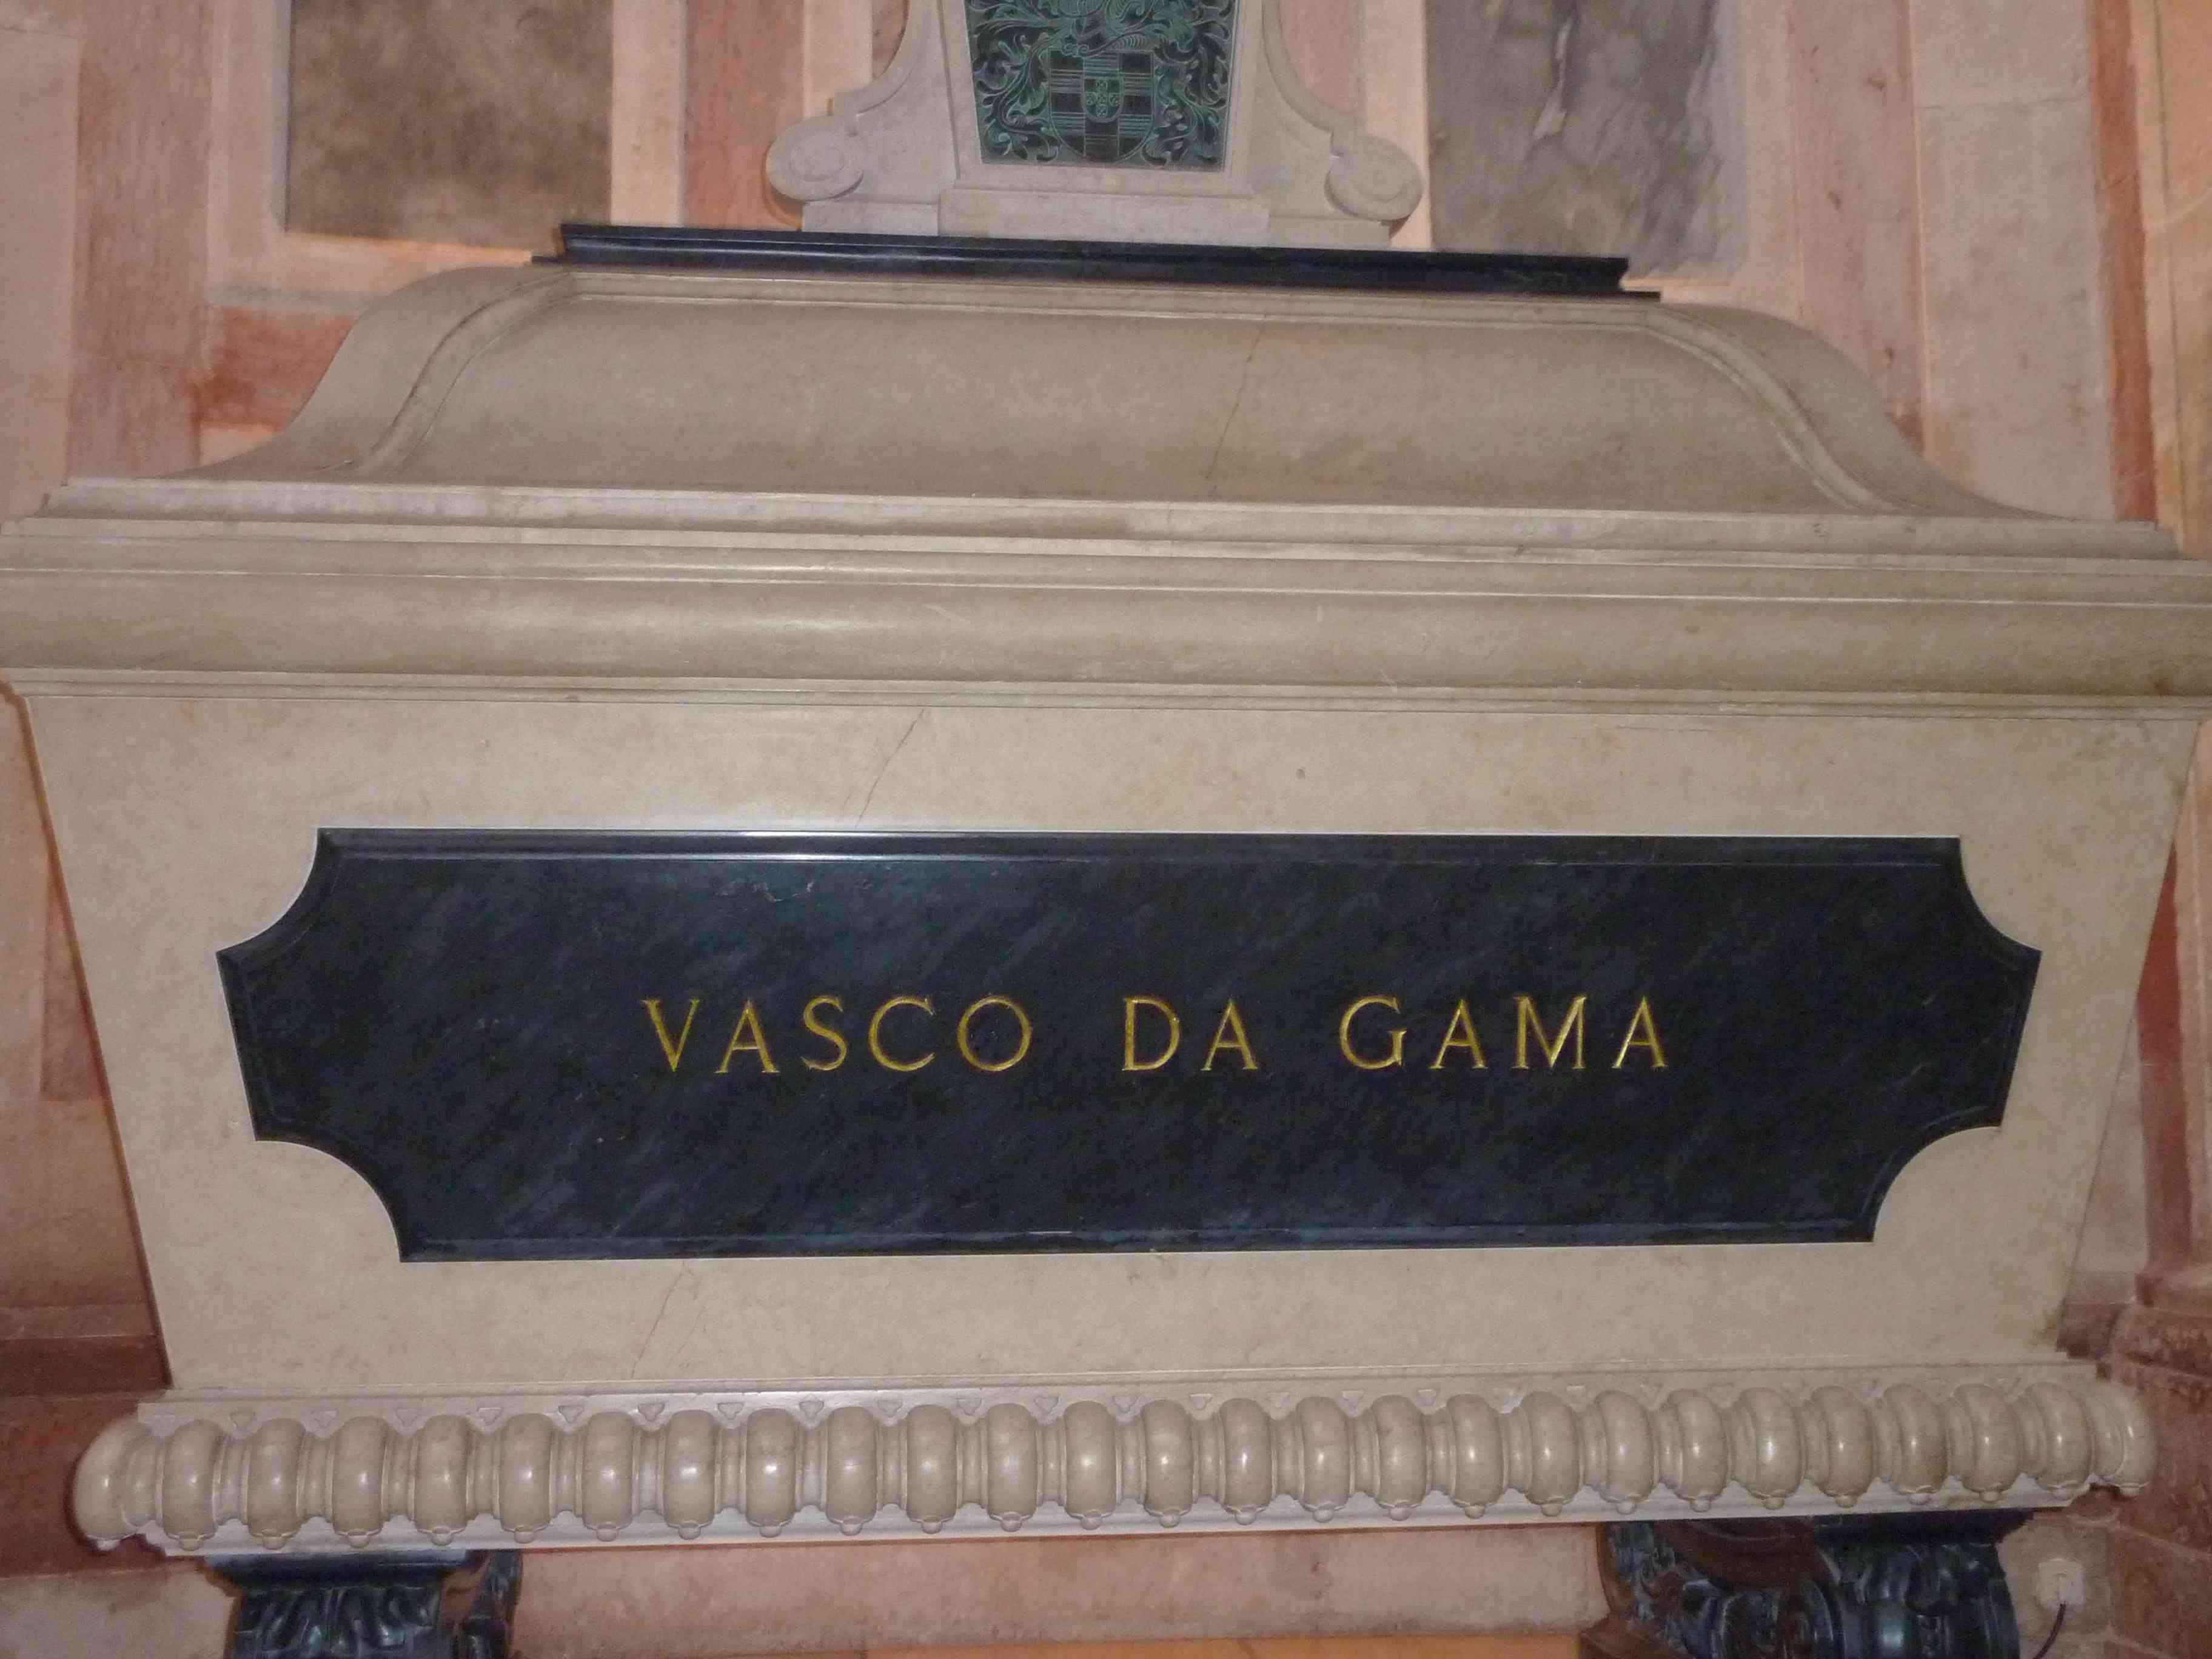 Vasco da Gama´s Tomb in the National Pantheon in Lisbon